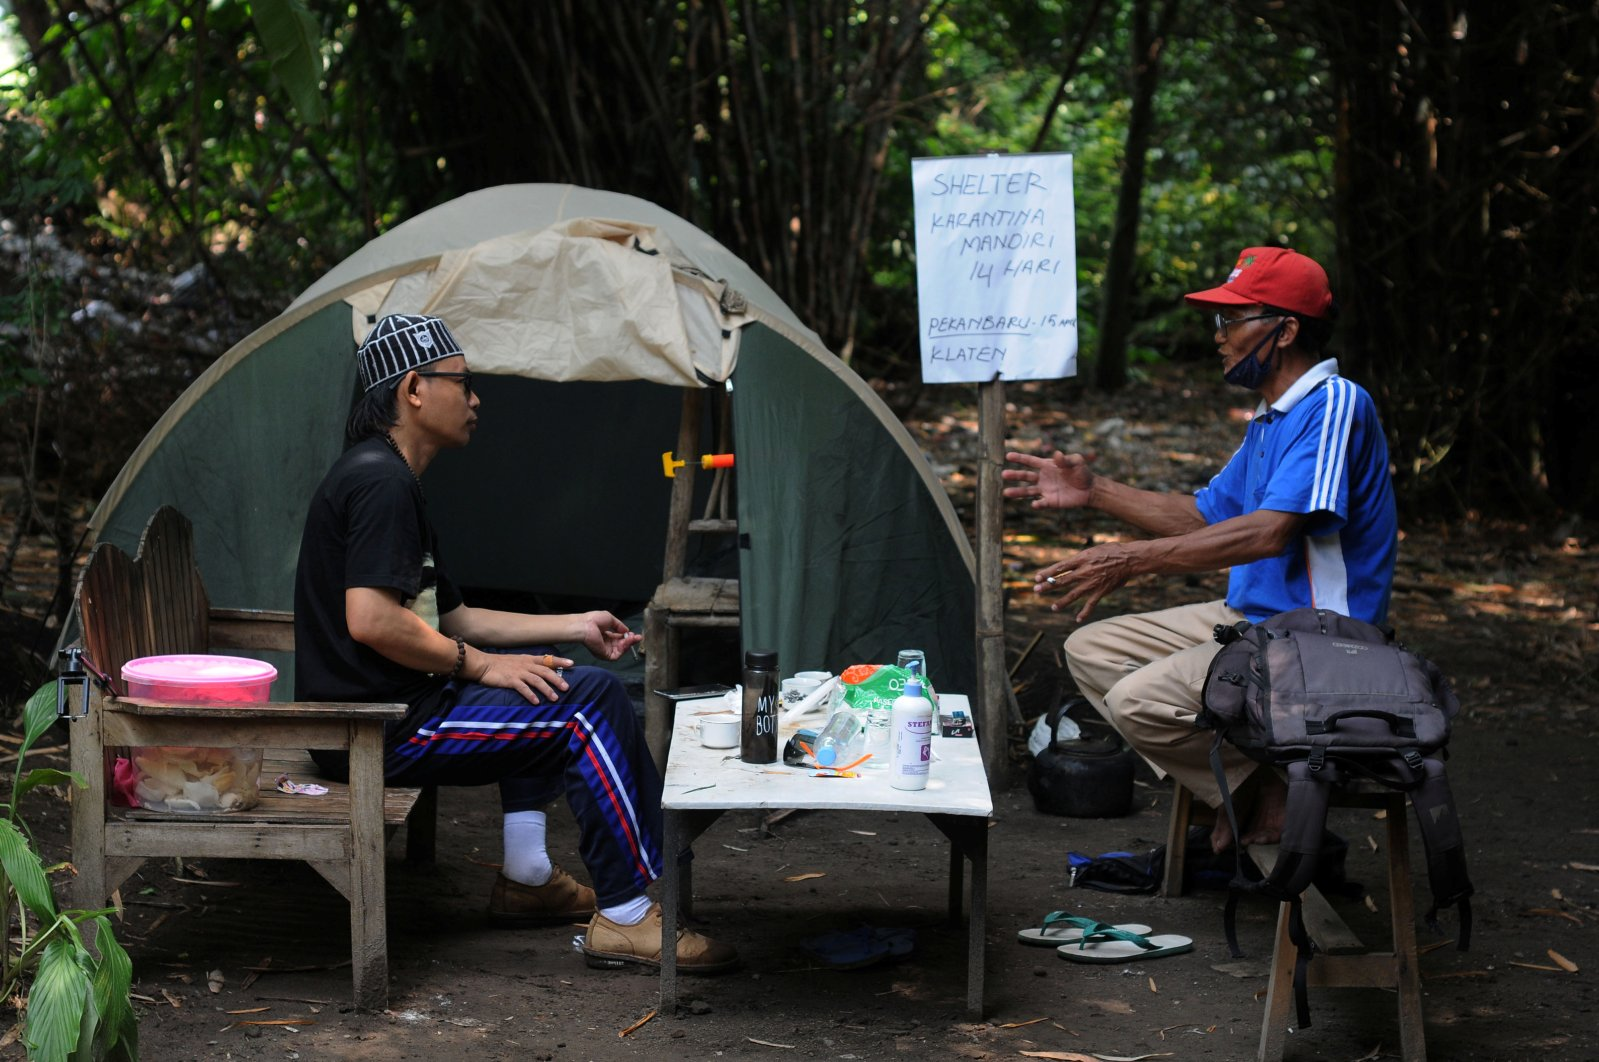 Abdullah Al Mabrur talks with his neighbour outside a tent he used for self-quarantine on a river bank after he came back from Pekanbaru, to prevent the spread of the coronavirus disease in Klaten, Central Java province, Indonesia, April 20, 2020. (Reuters Photo)